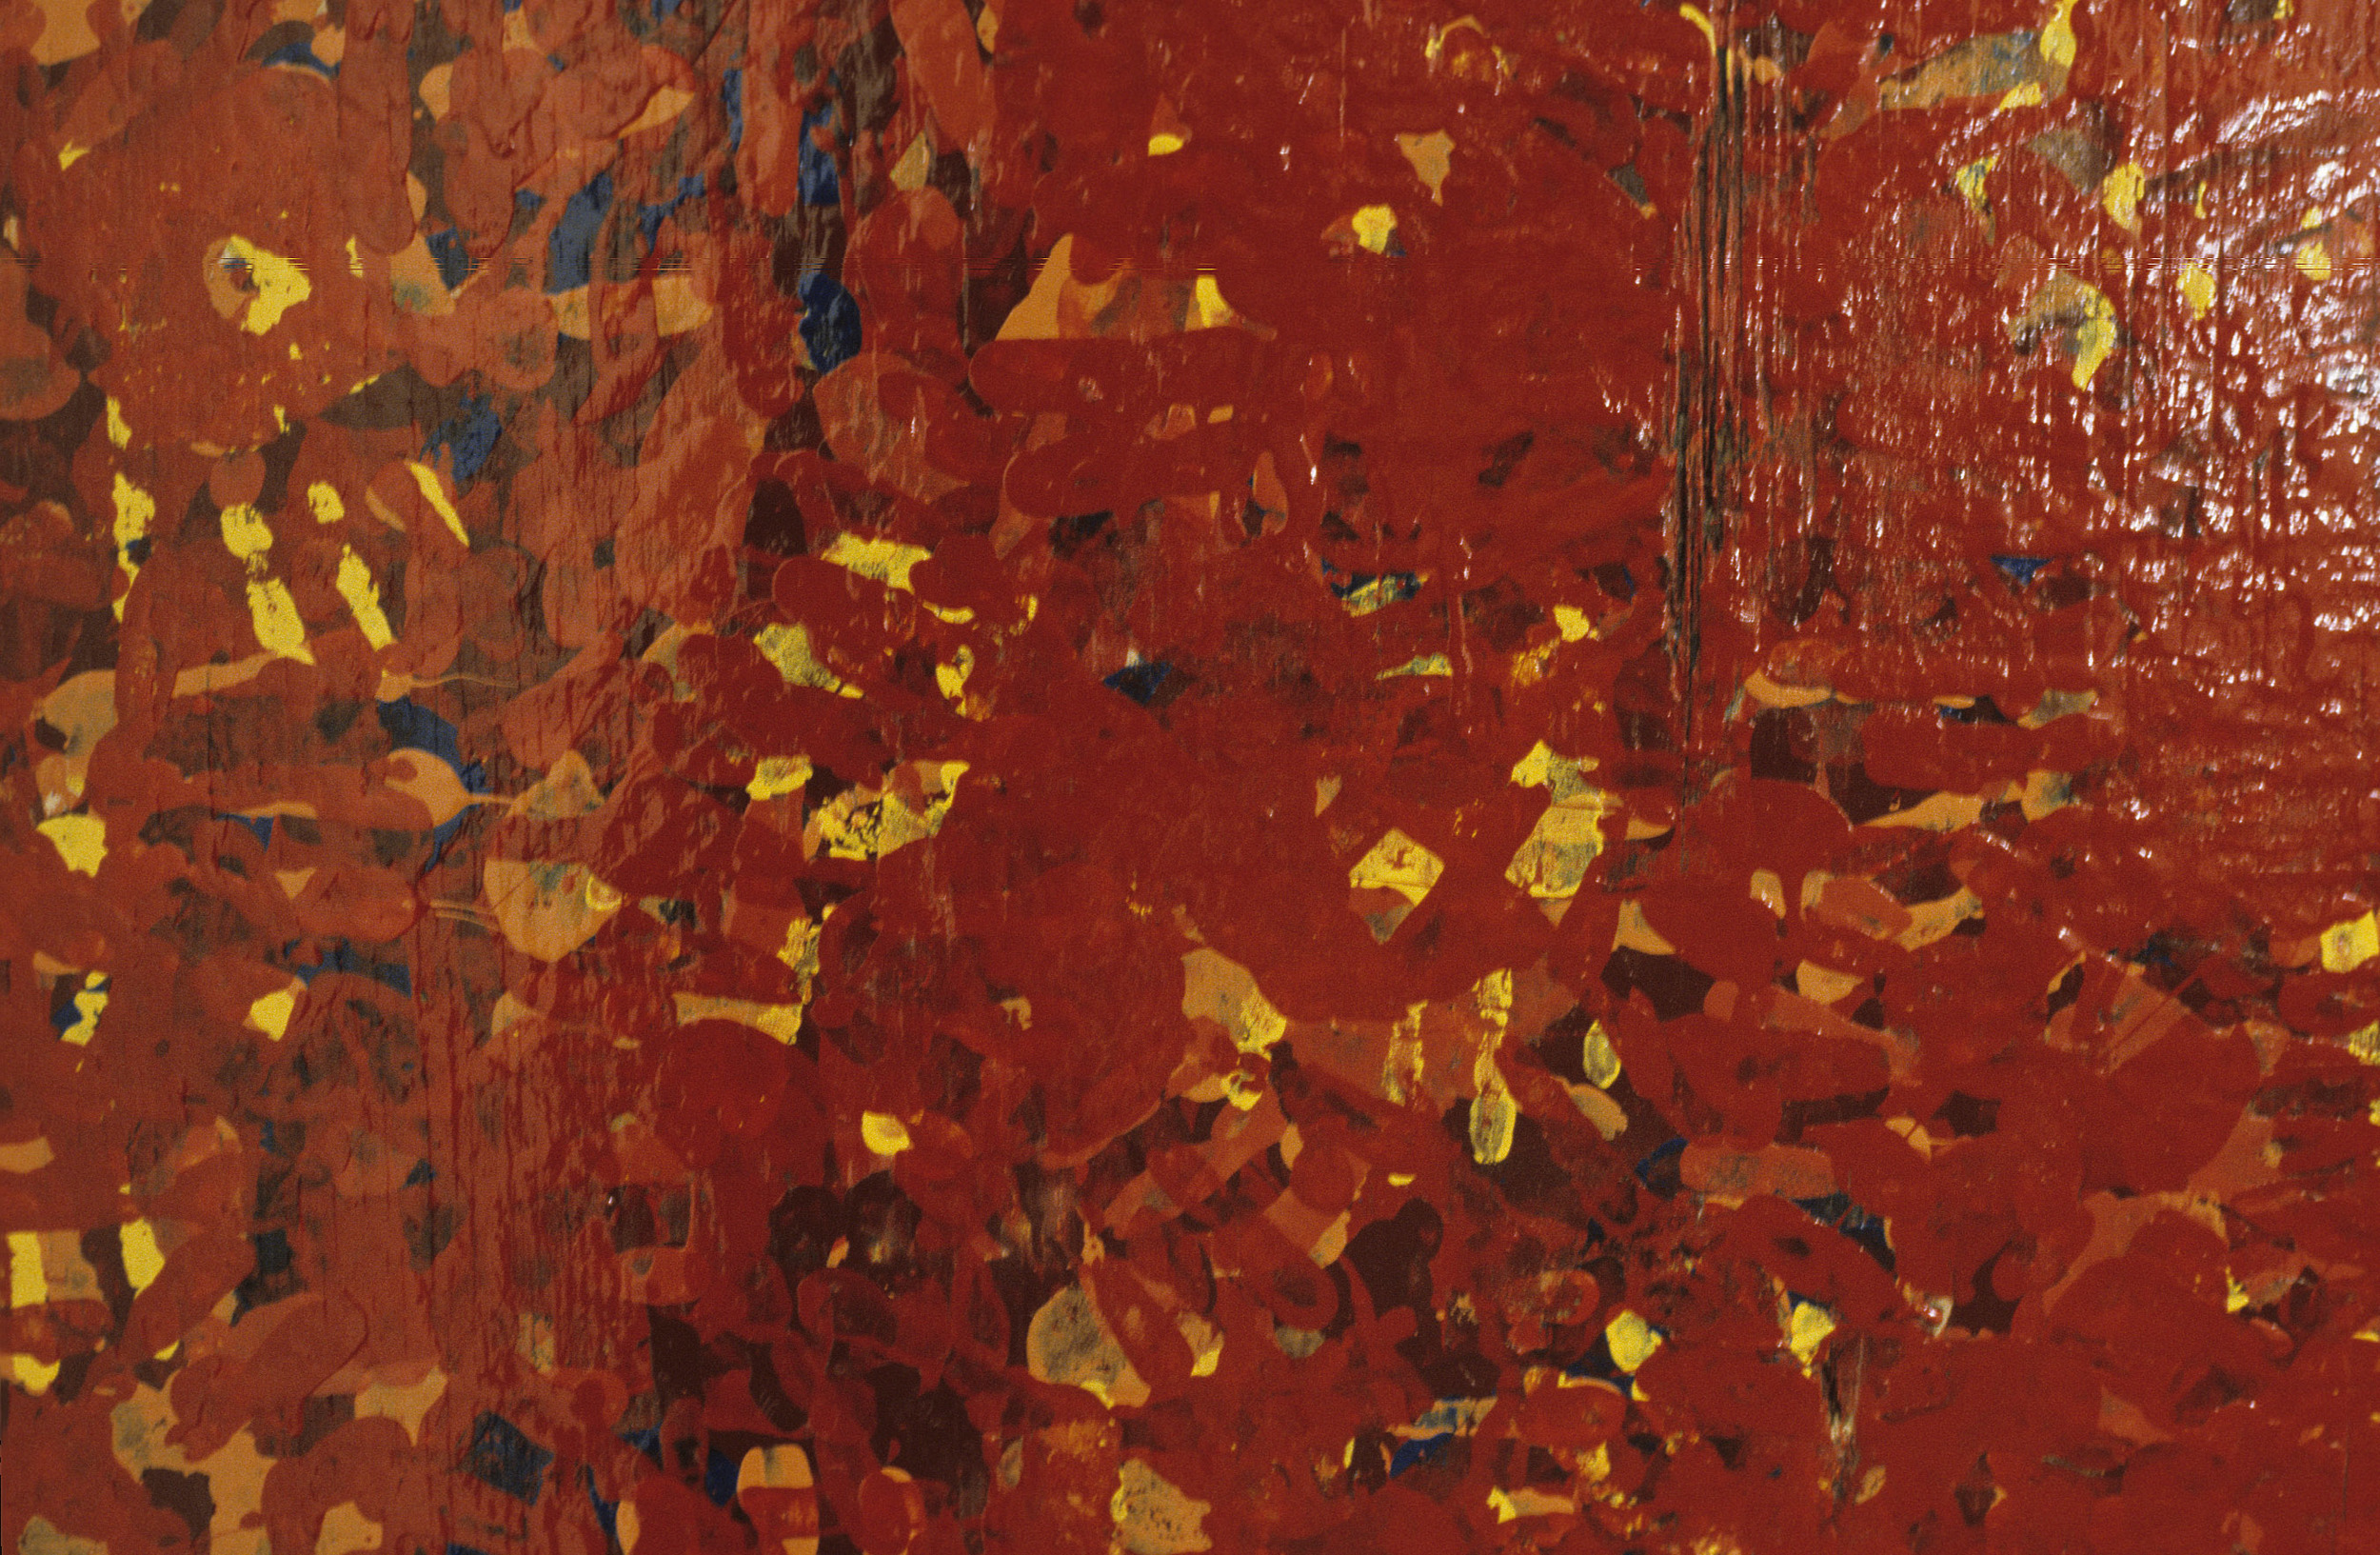 Detail, The Counting. Bulletin enamels on wood panel. Hundreds of handprints in several colors are layered.